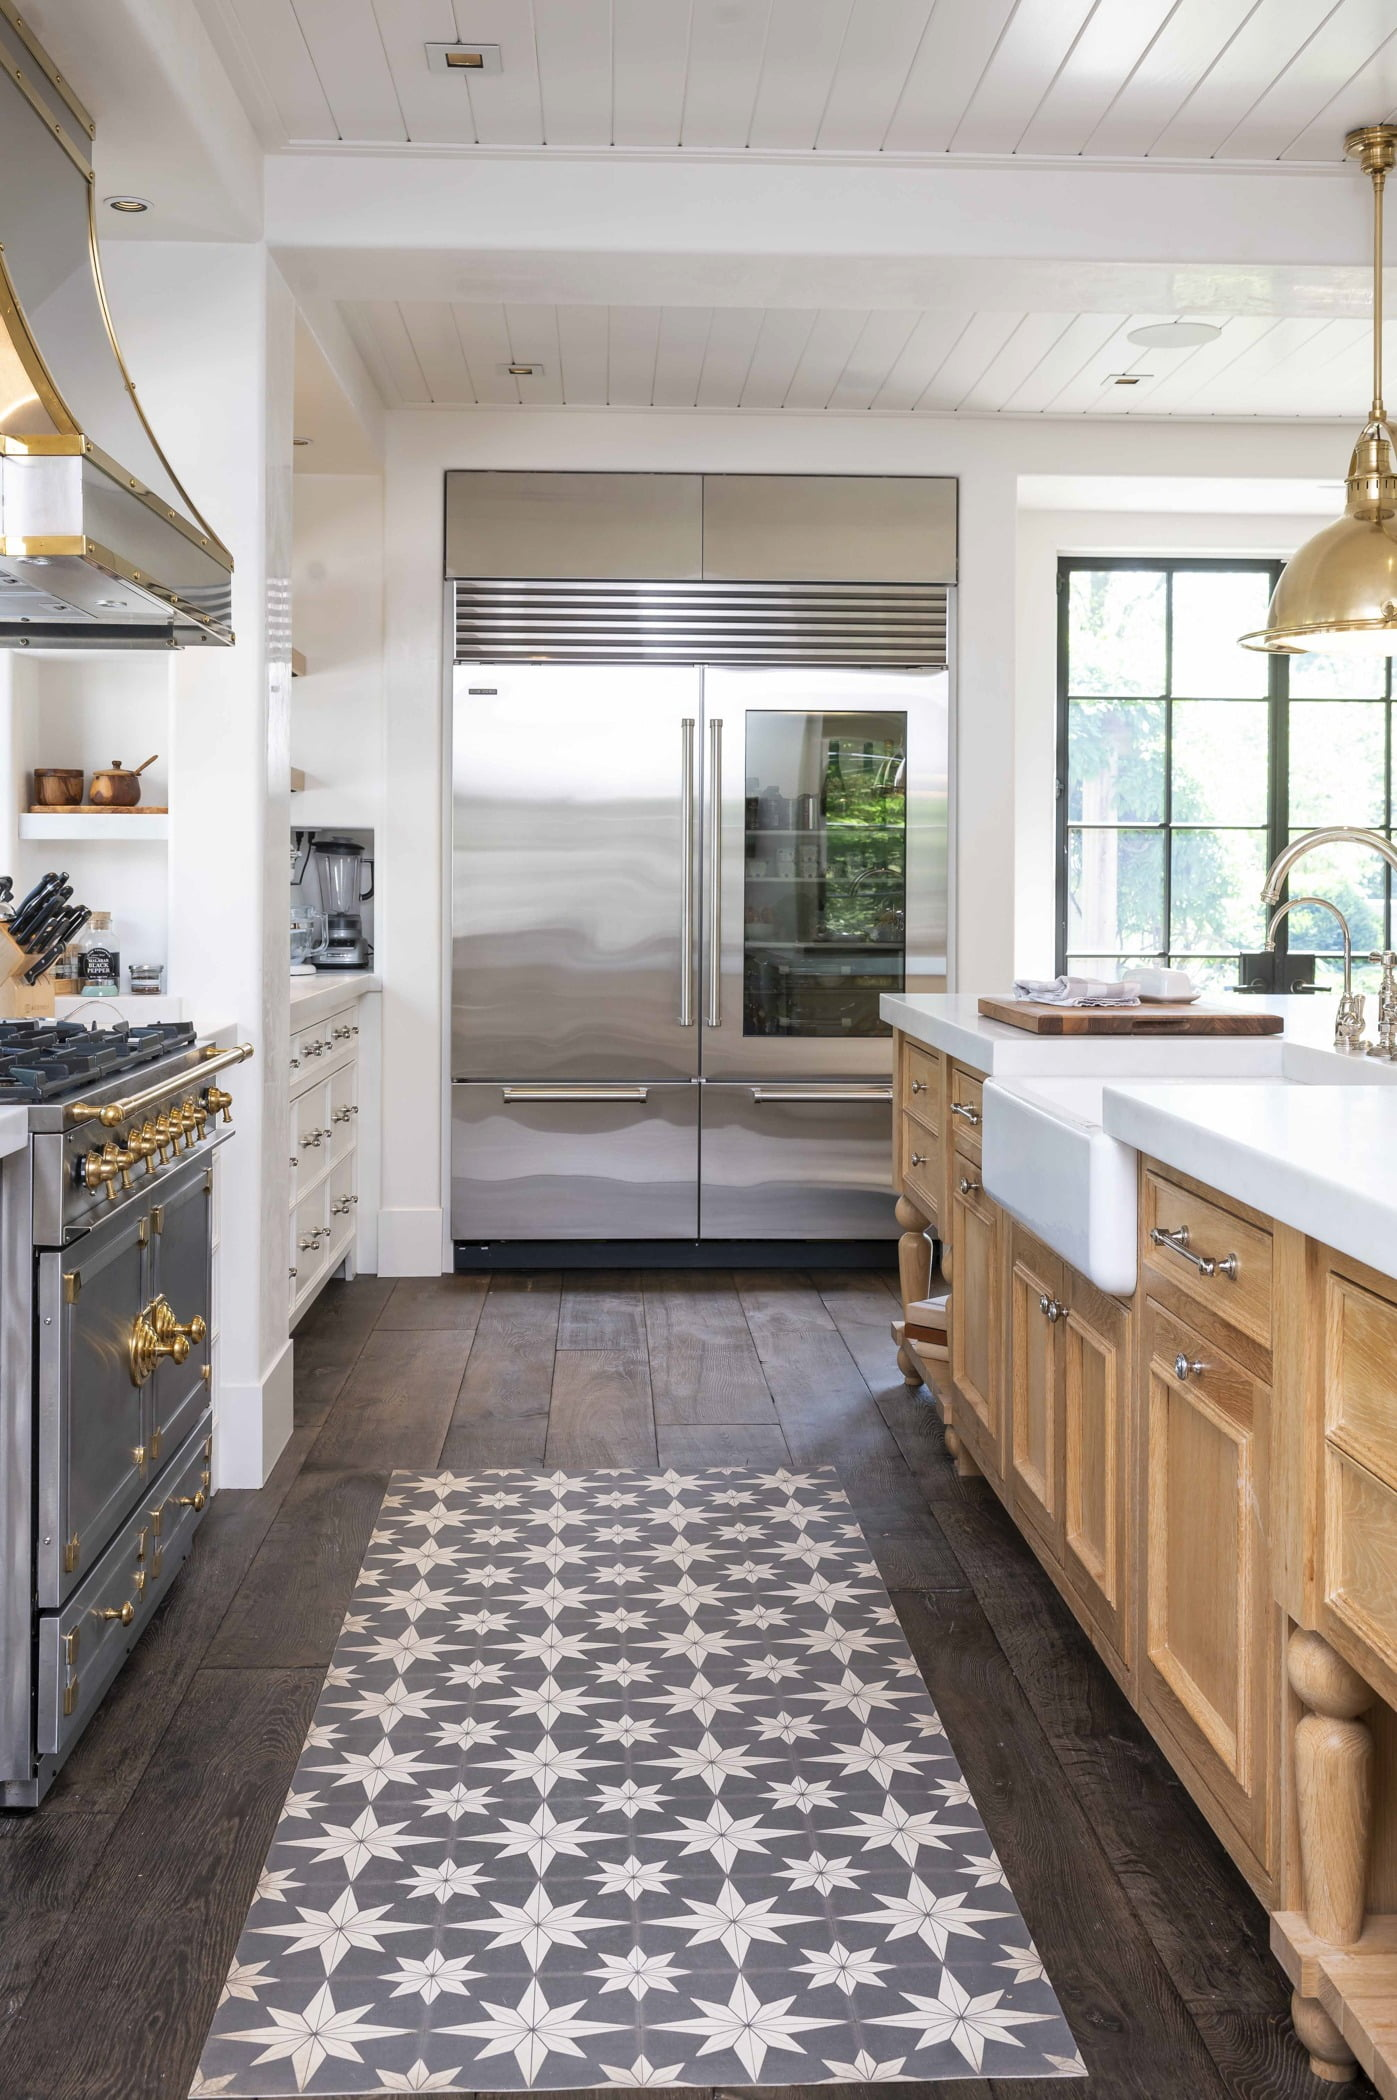 Transitional kitchen with light wood cabinetry and white marble countertops, stainless steel appliances, and dark hardwood flooring